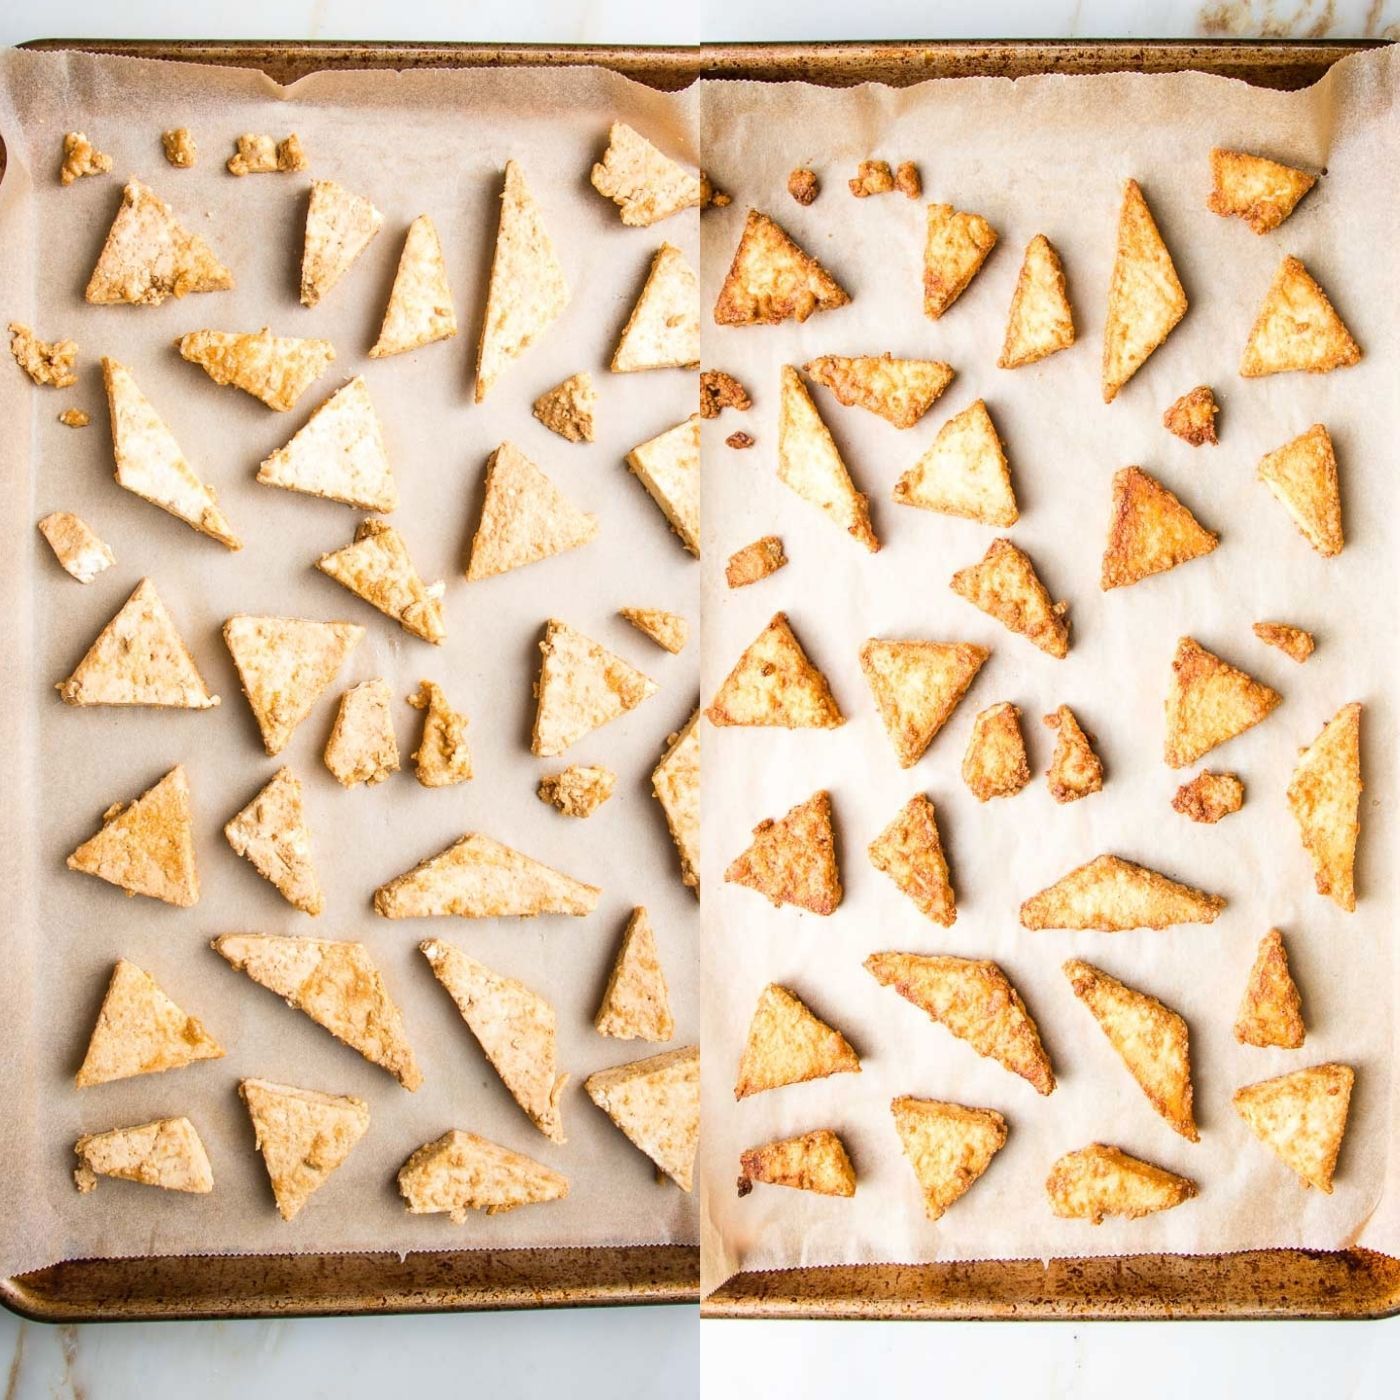 Baking sheet lined with parchment paper before and after baking when it's browned and crispy.